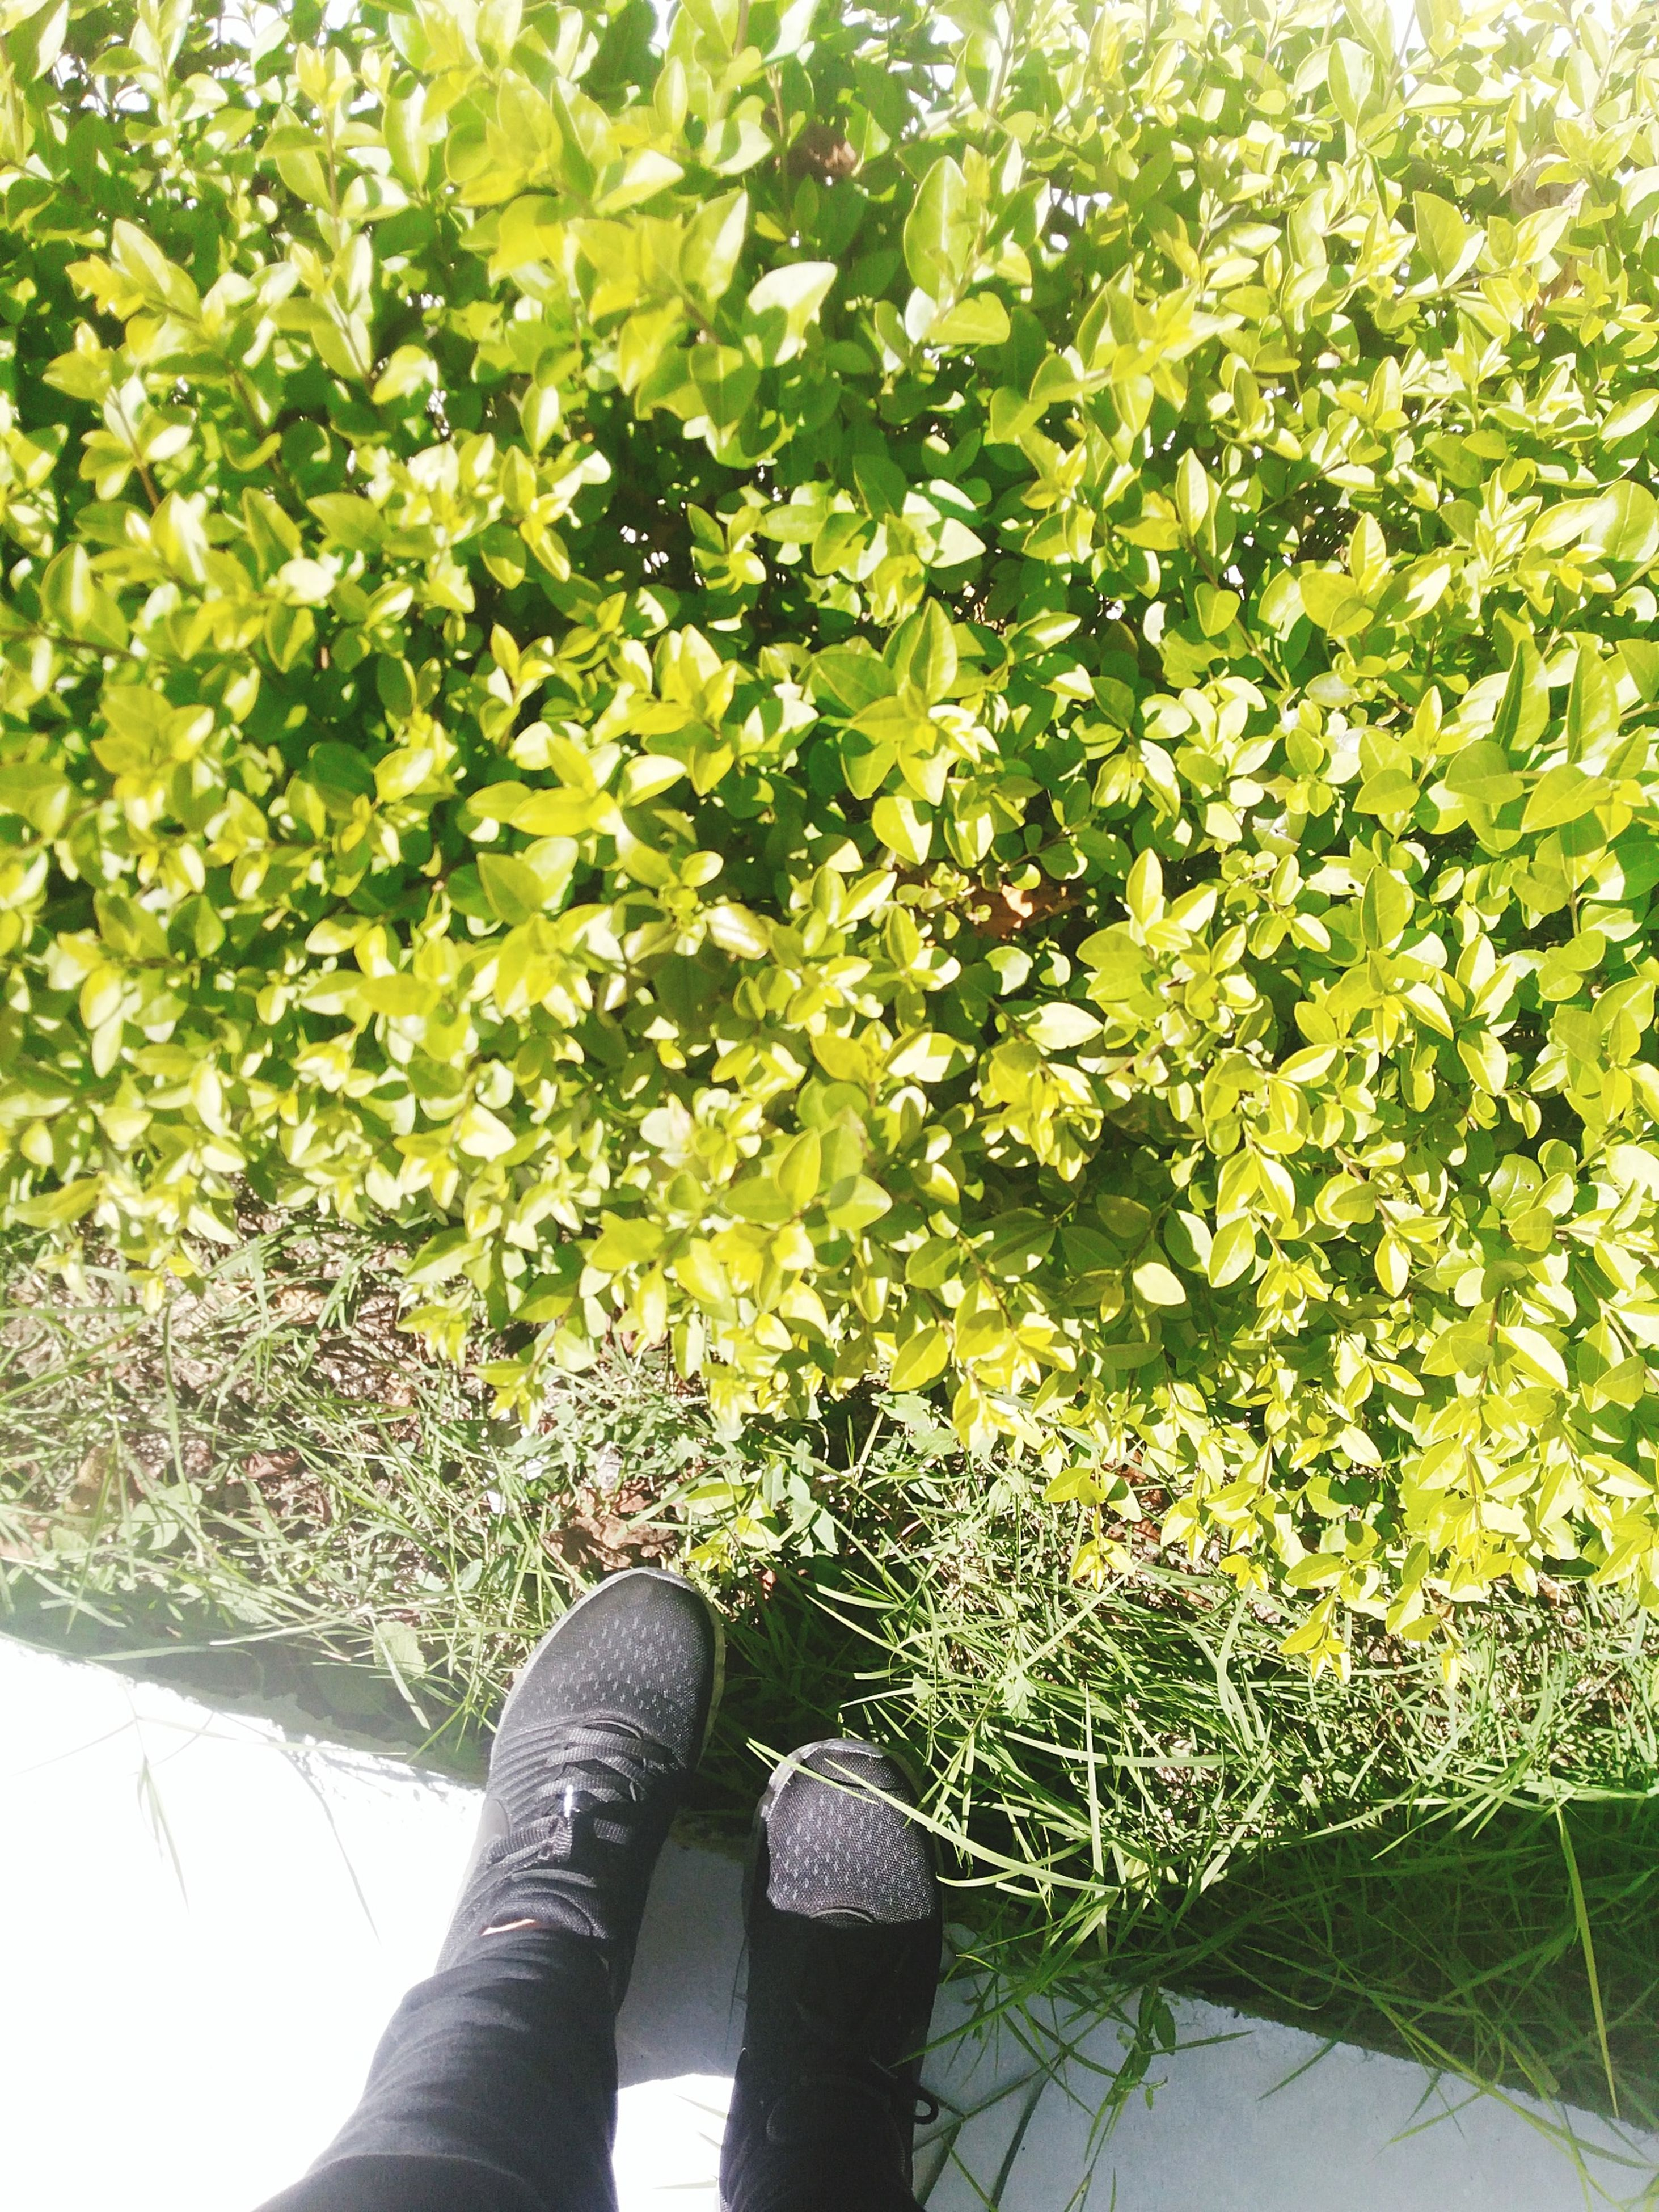 human body part, one person, growth, real people, human leg, low section, green color, plant, nature, shoe, day, outdoors, leaf, beauty in nature, grass, close-up, people